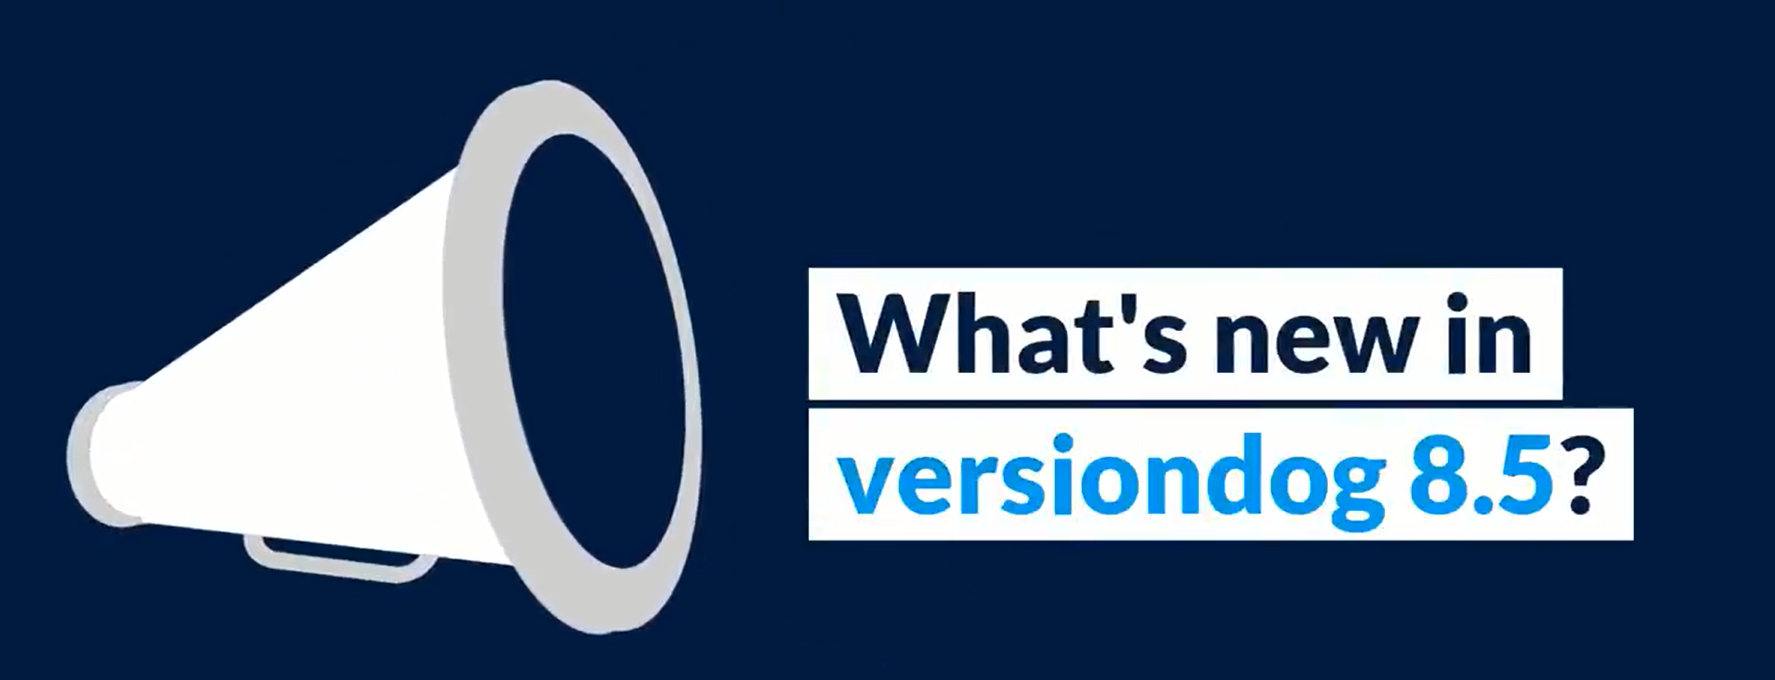 What's new in versiondog